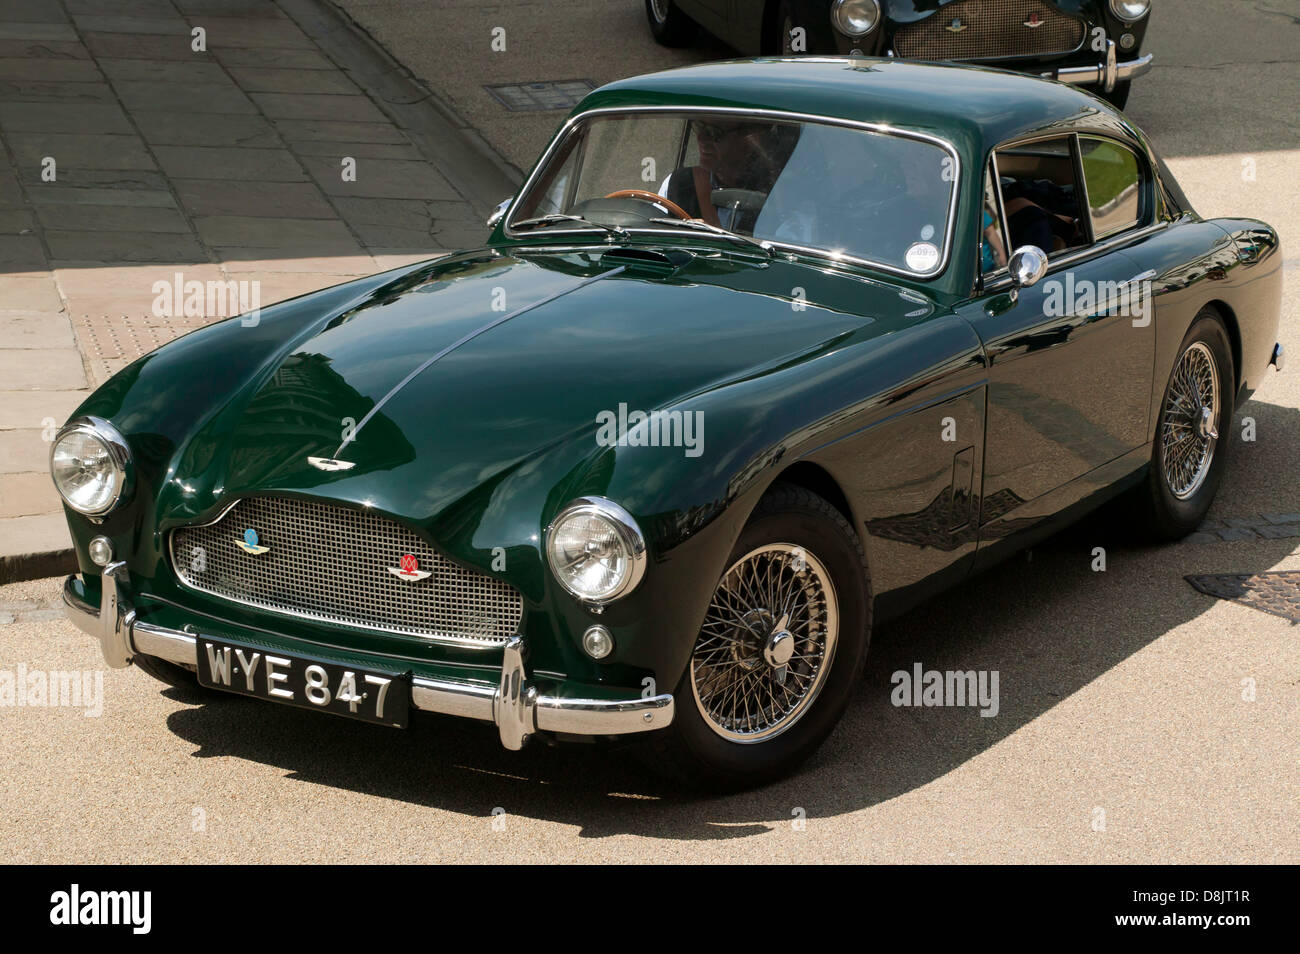 A Beautiful Example Of A Classic Aston Martin Db3 On